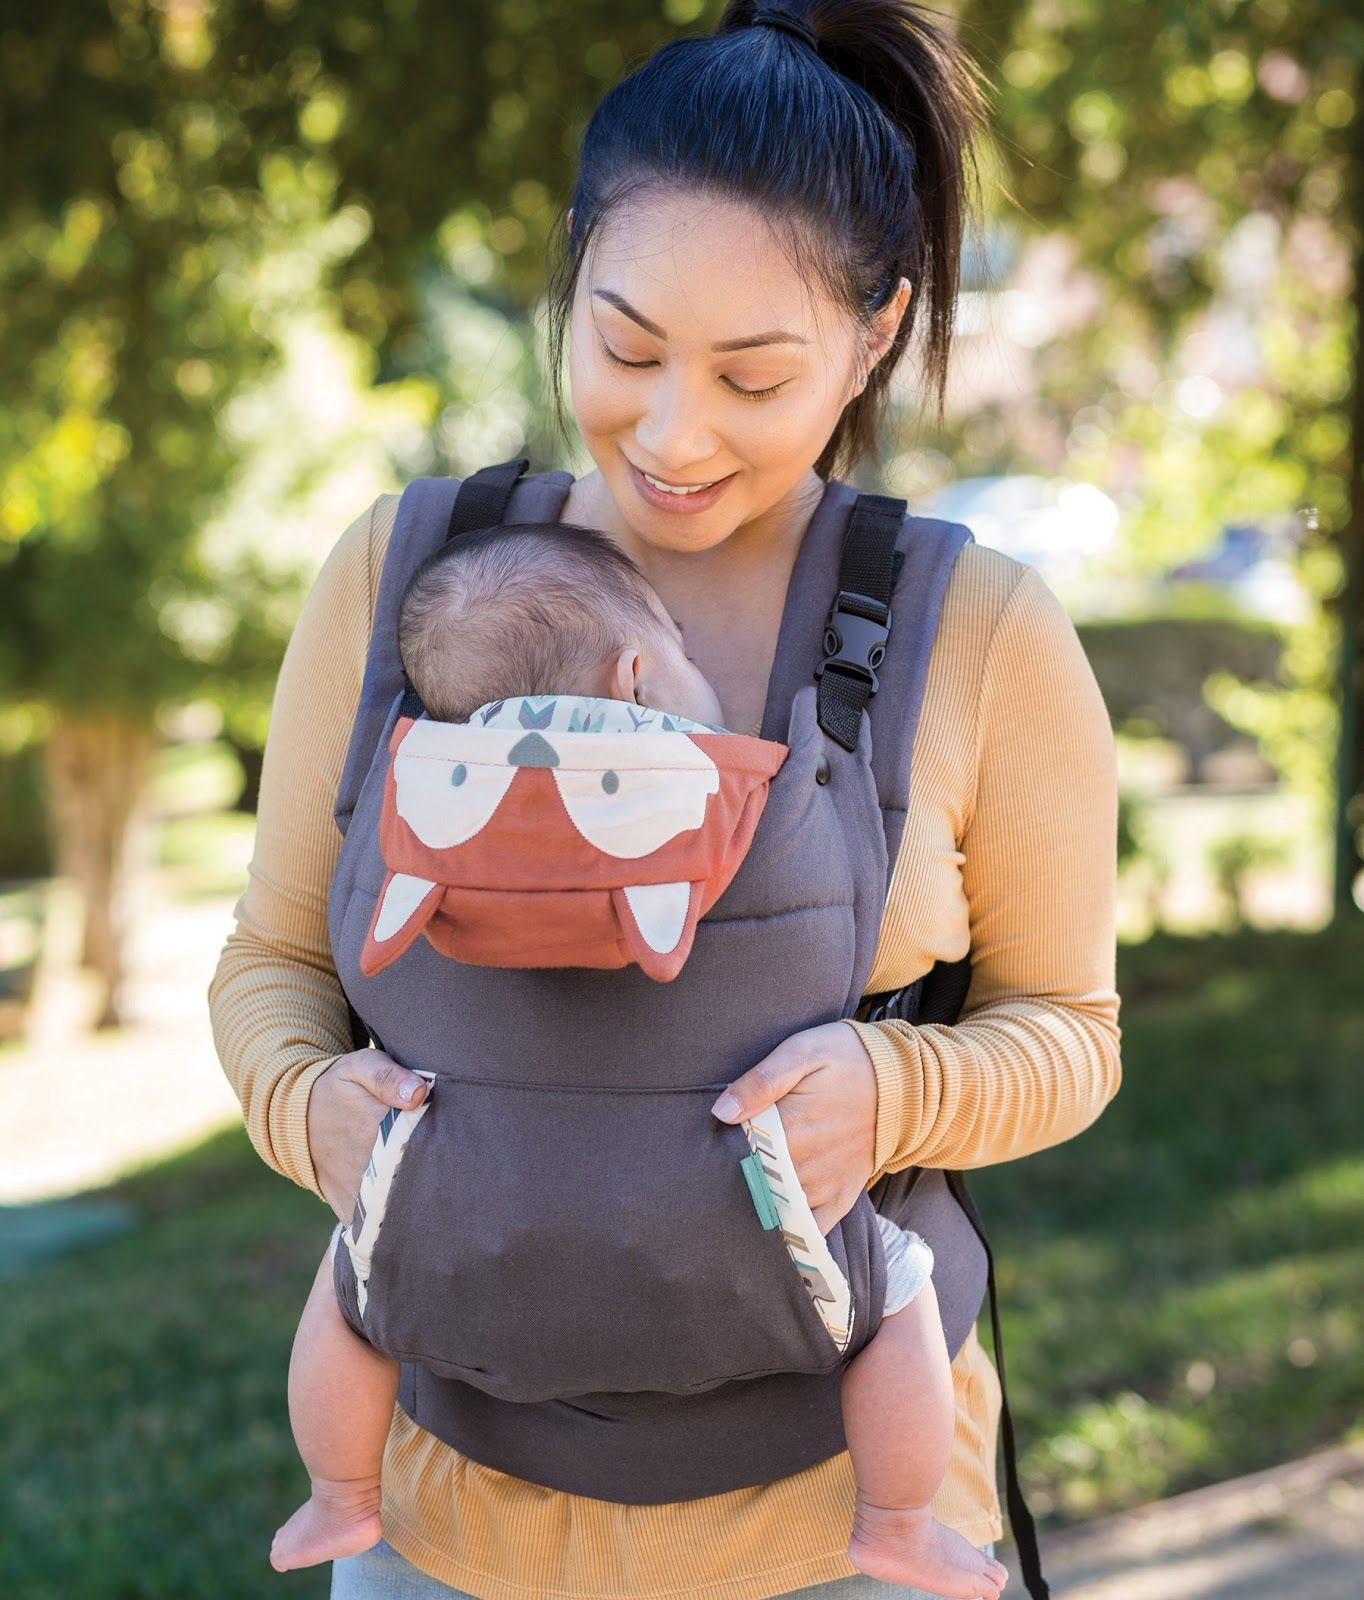 Infant Carrier Military Infantino S Cuddle Up Ergonomic Hoodie Carrier Allows Two